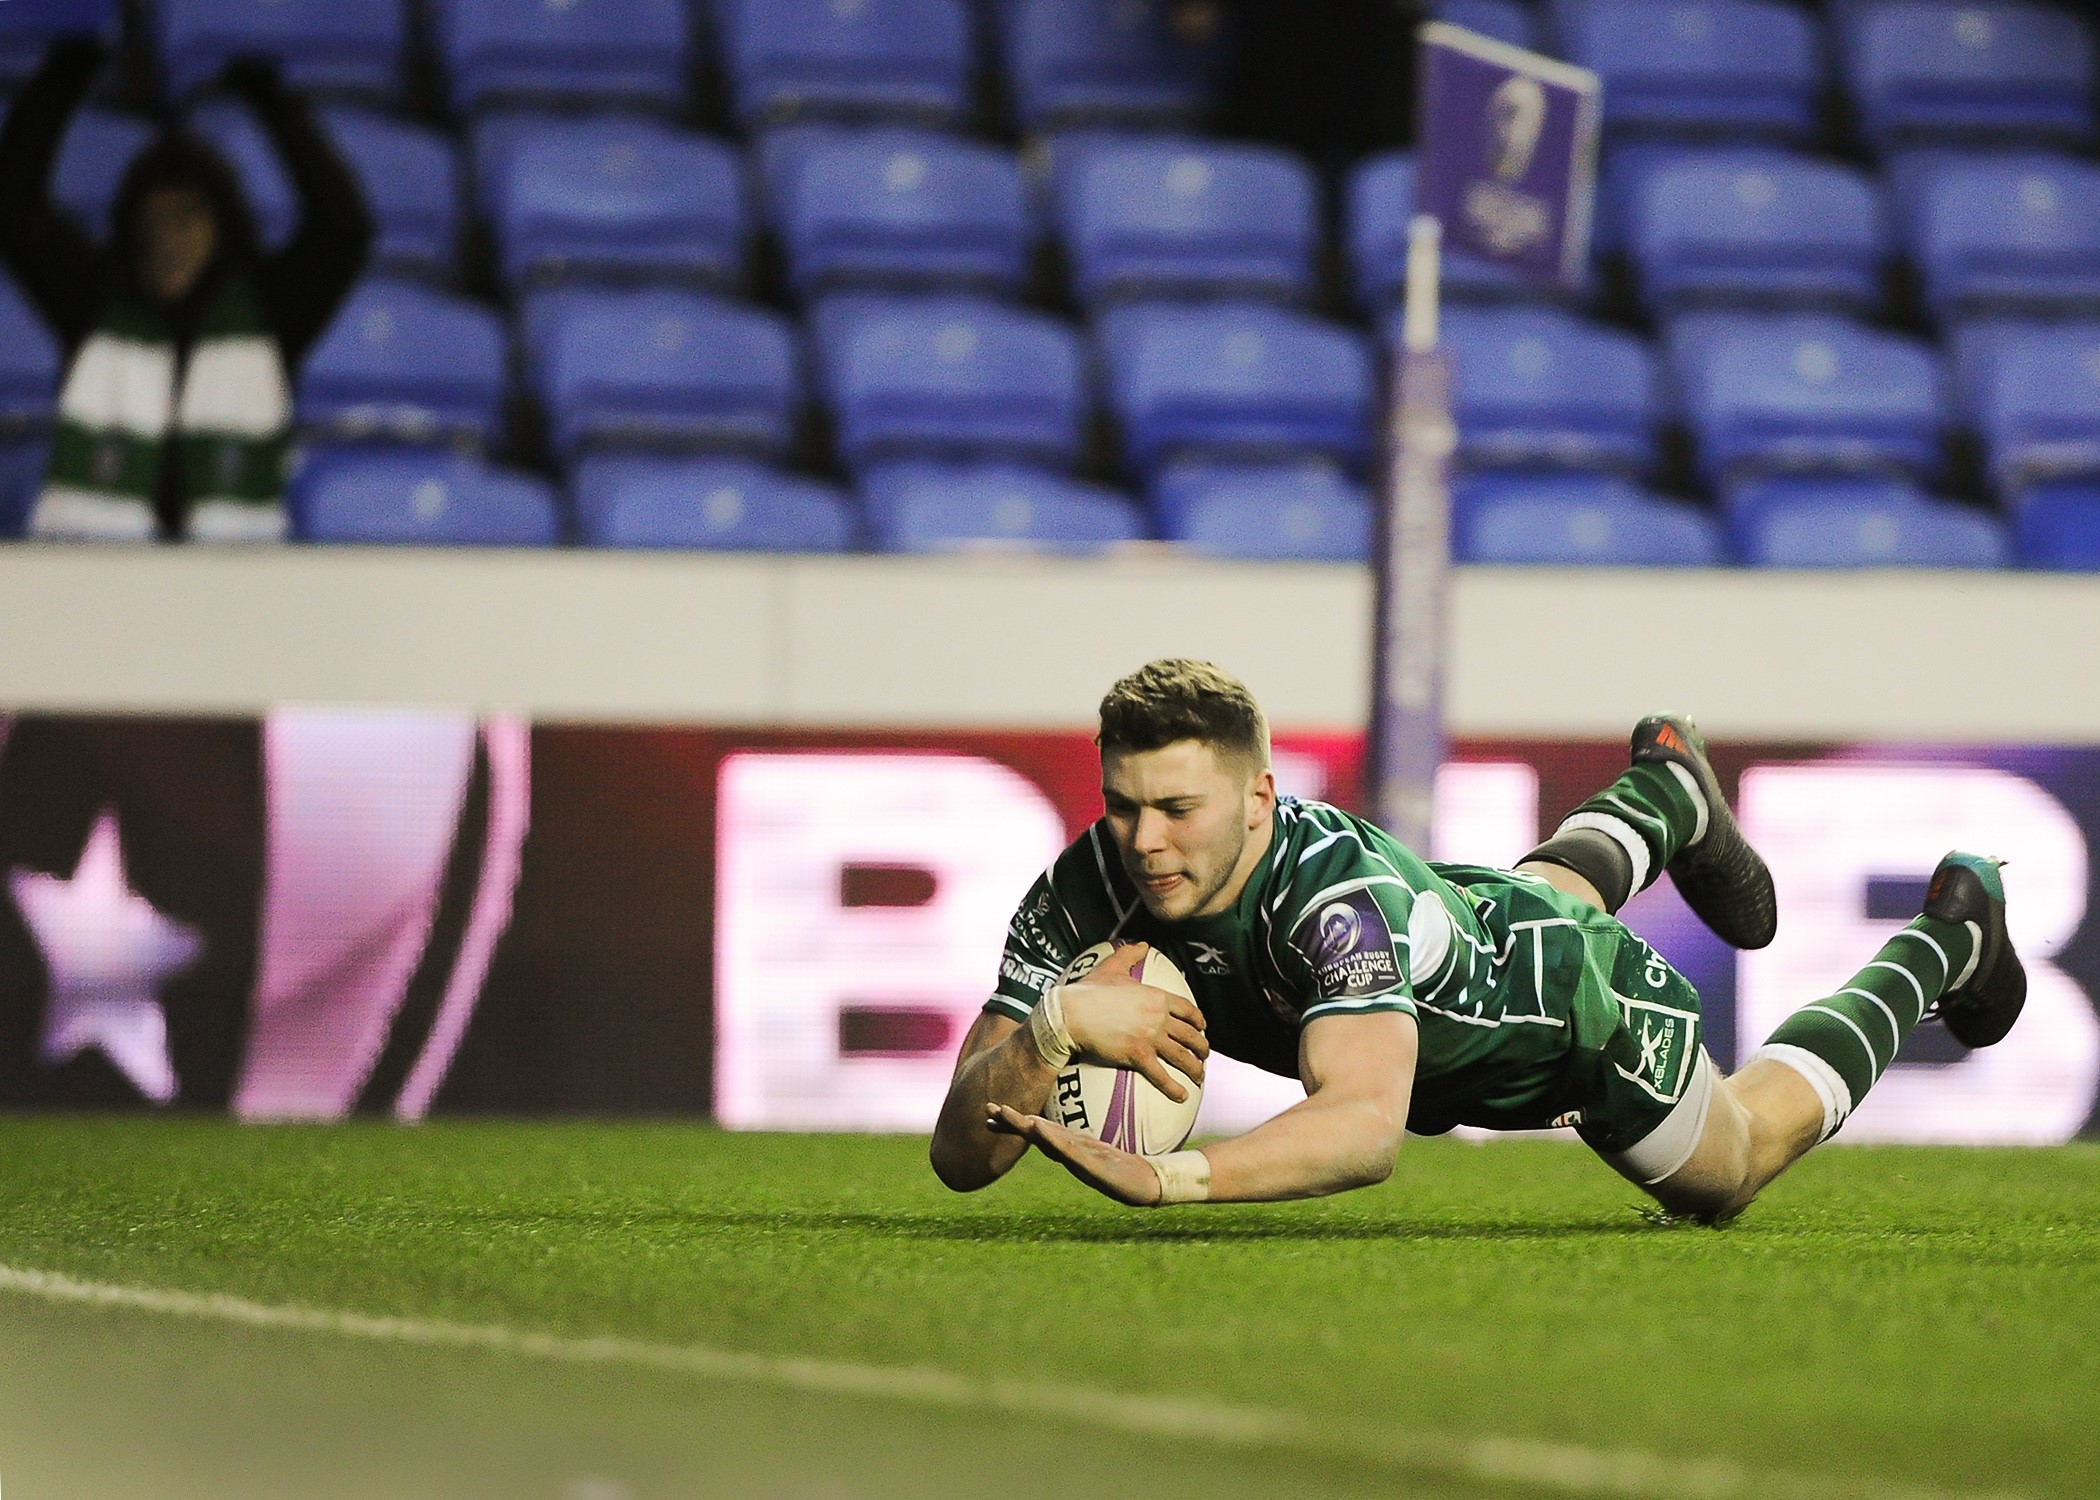 Theo Brophy Clews scores a try against Krasny. Pictures: David M.Moore